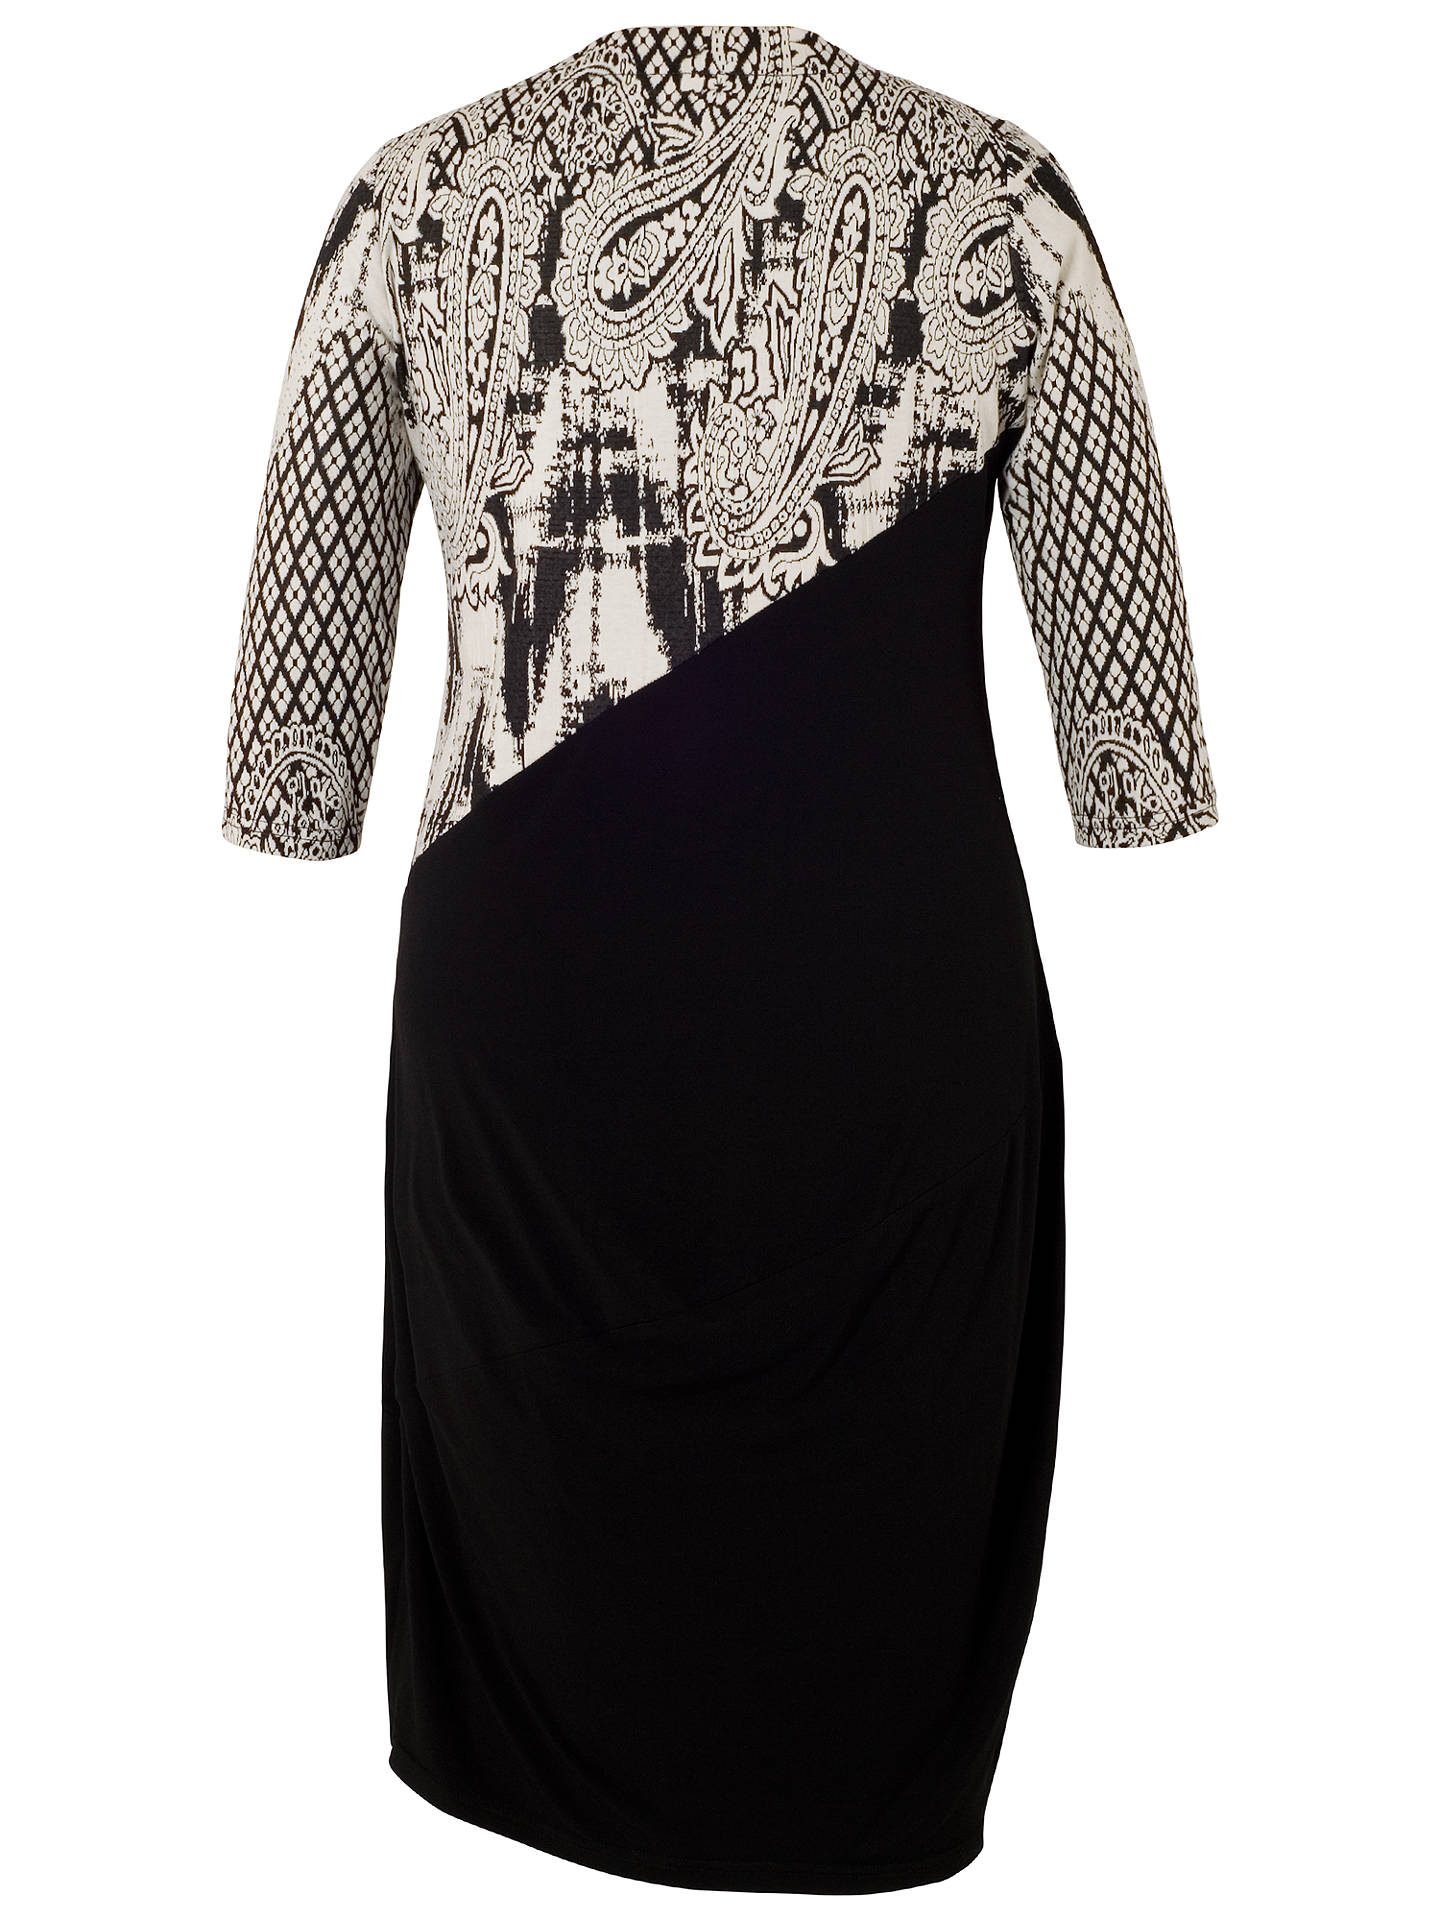 BuyChesca Paisley Jacquard Dress, Black/Ivory, 12-14 Online at johnlewis.com